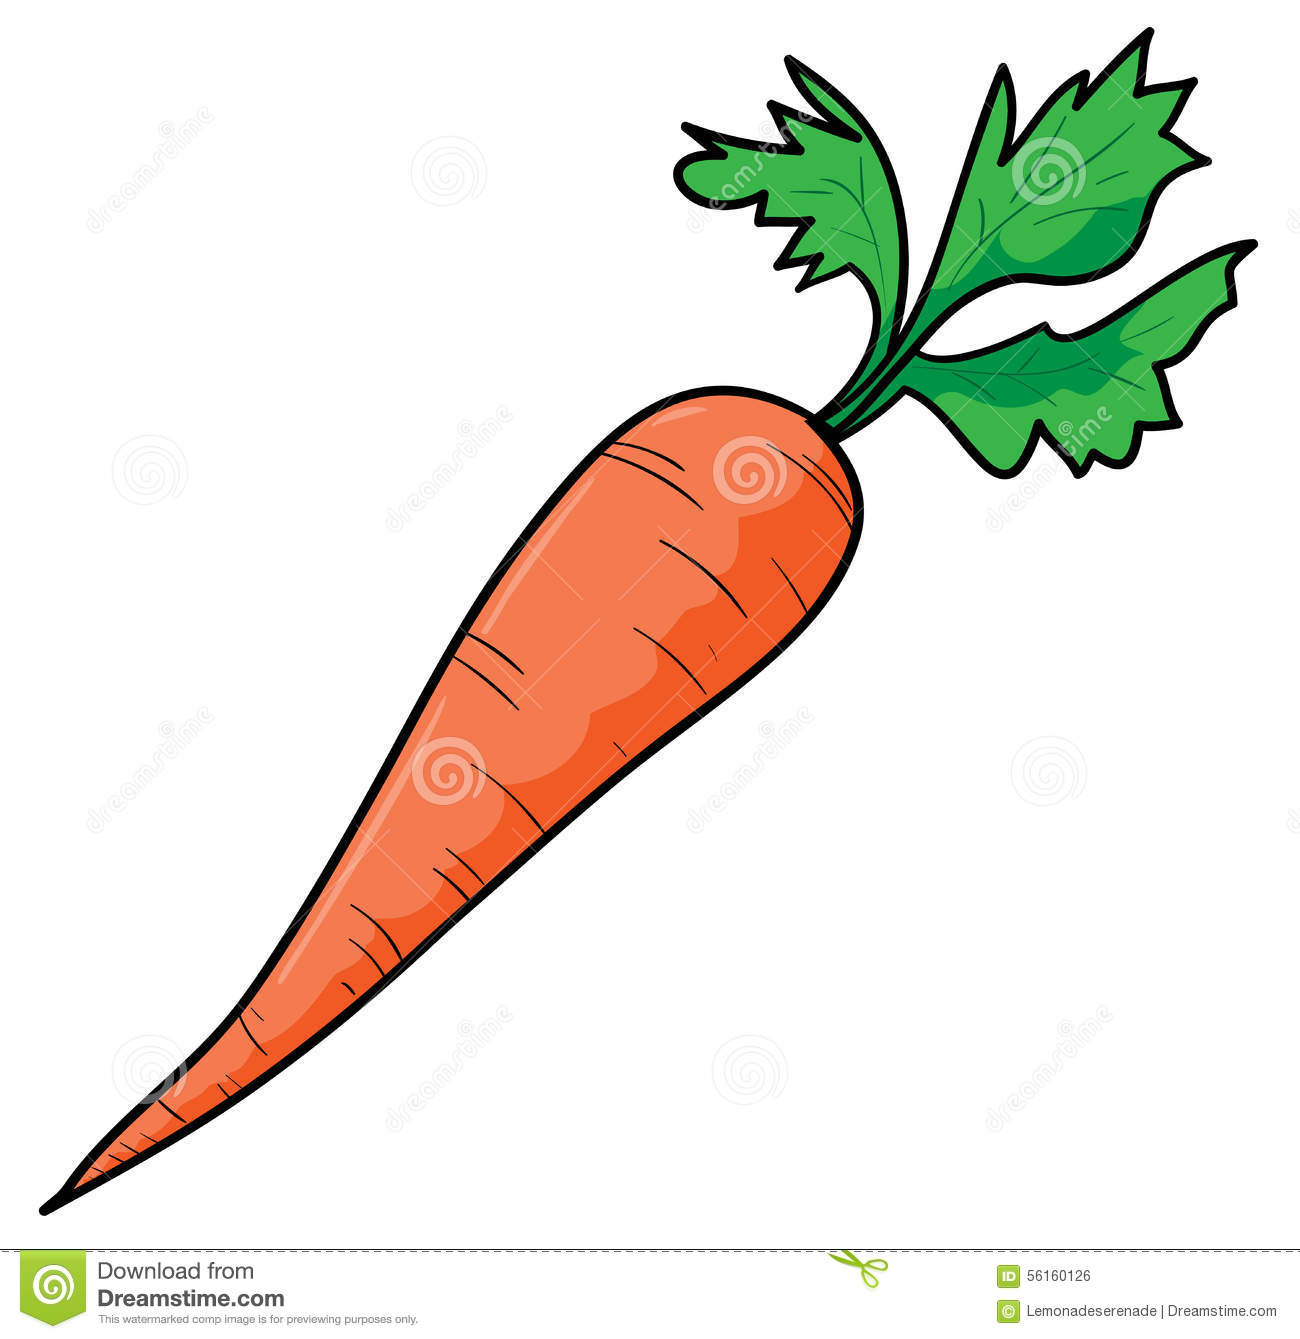 hand drawing of a fresh carrot on a white background (editable).